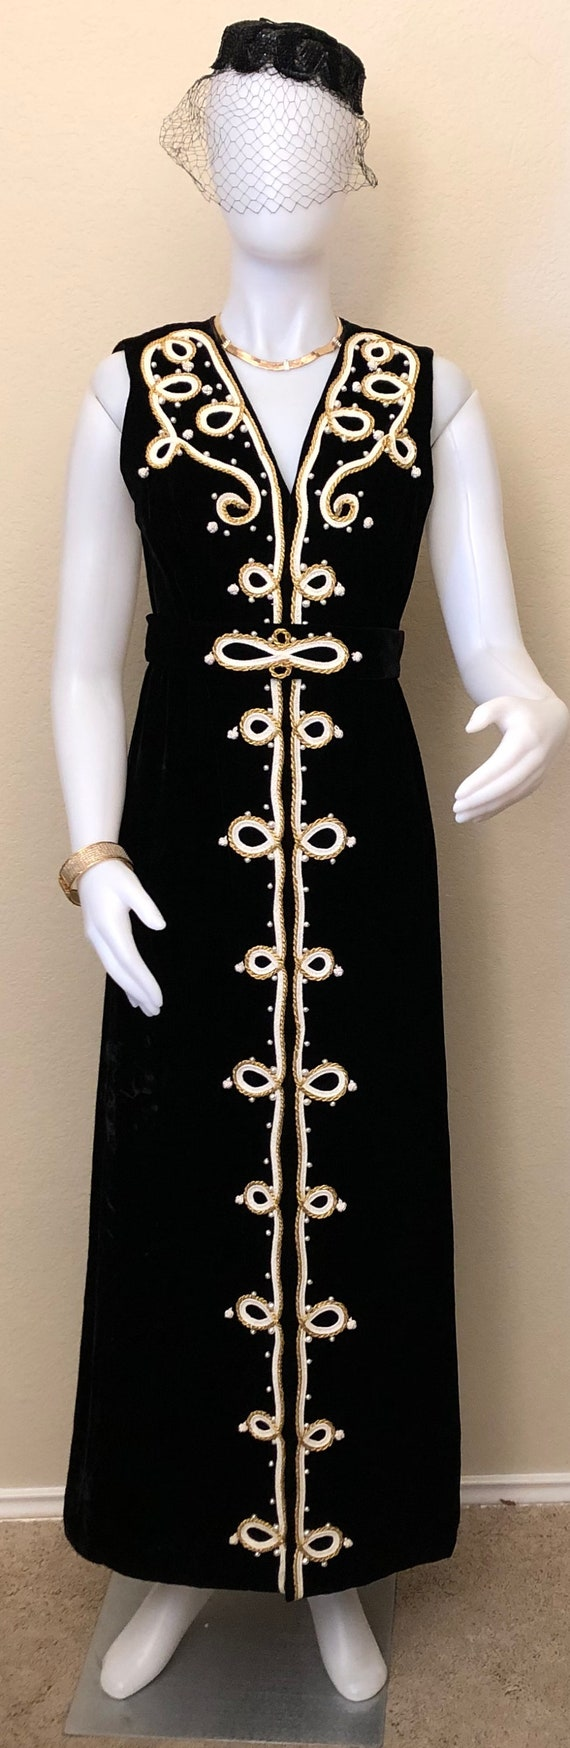 1950's to 1960's Black Velvet Evening Gown